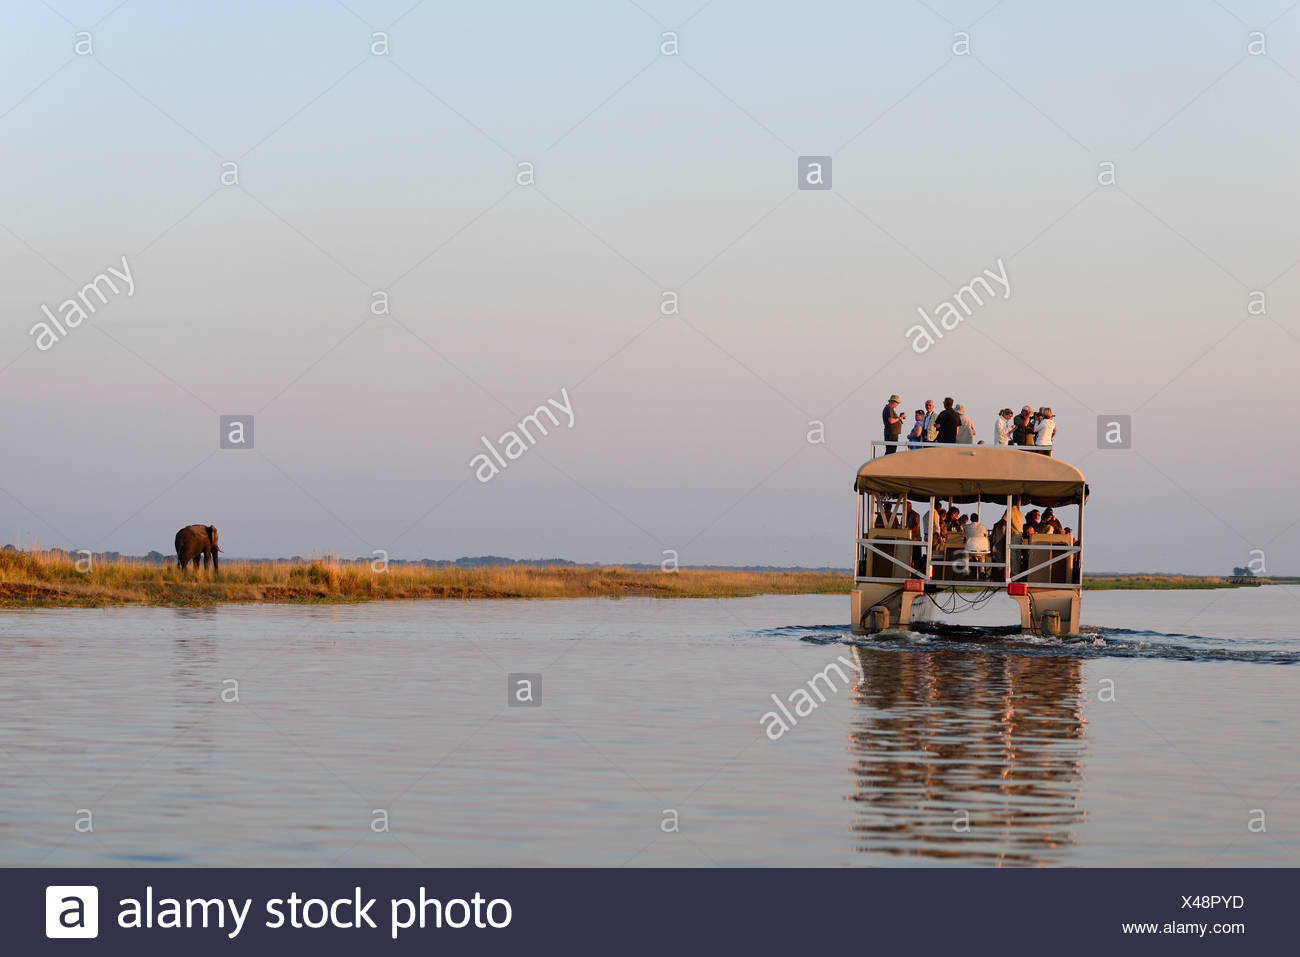 Africa, Botswana, Chobe, National Park, Hippo, Hippopotamus, animal, safari, water, river, horizontal, wildlife, boat, tourist, - Stock Image